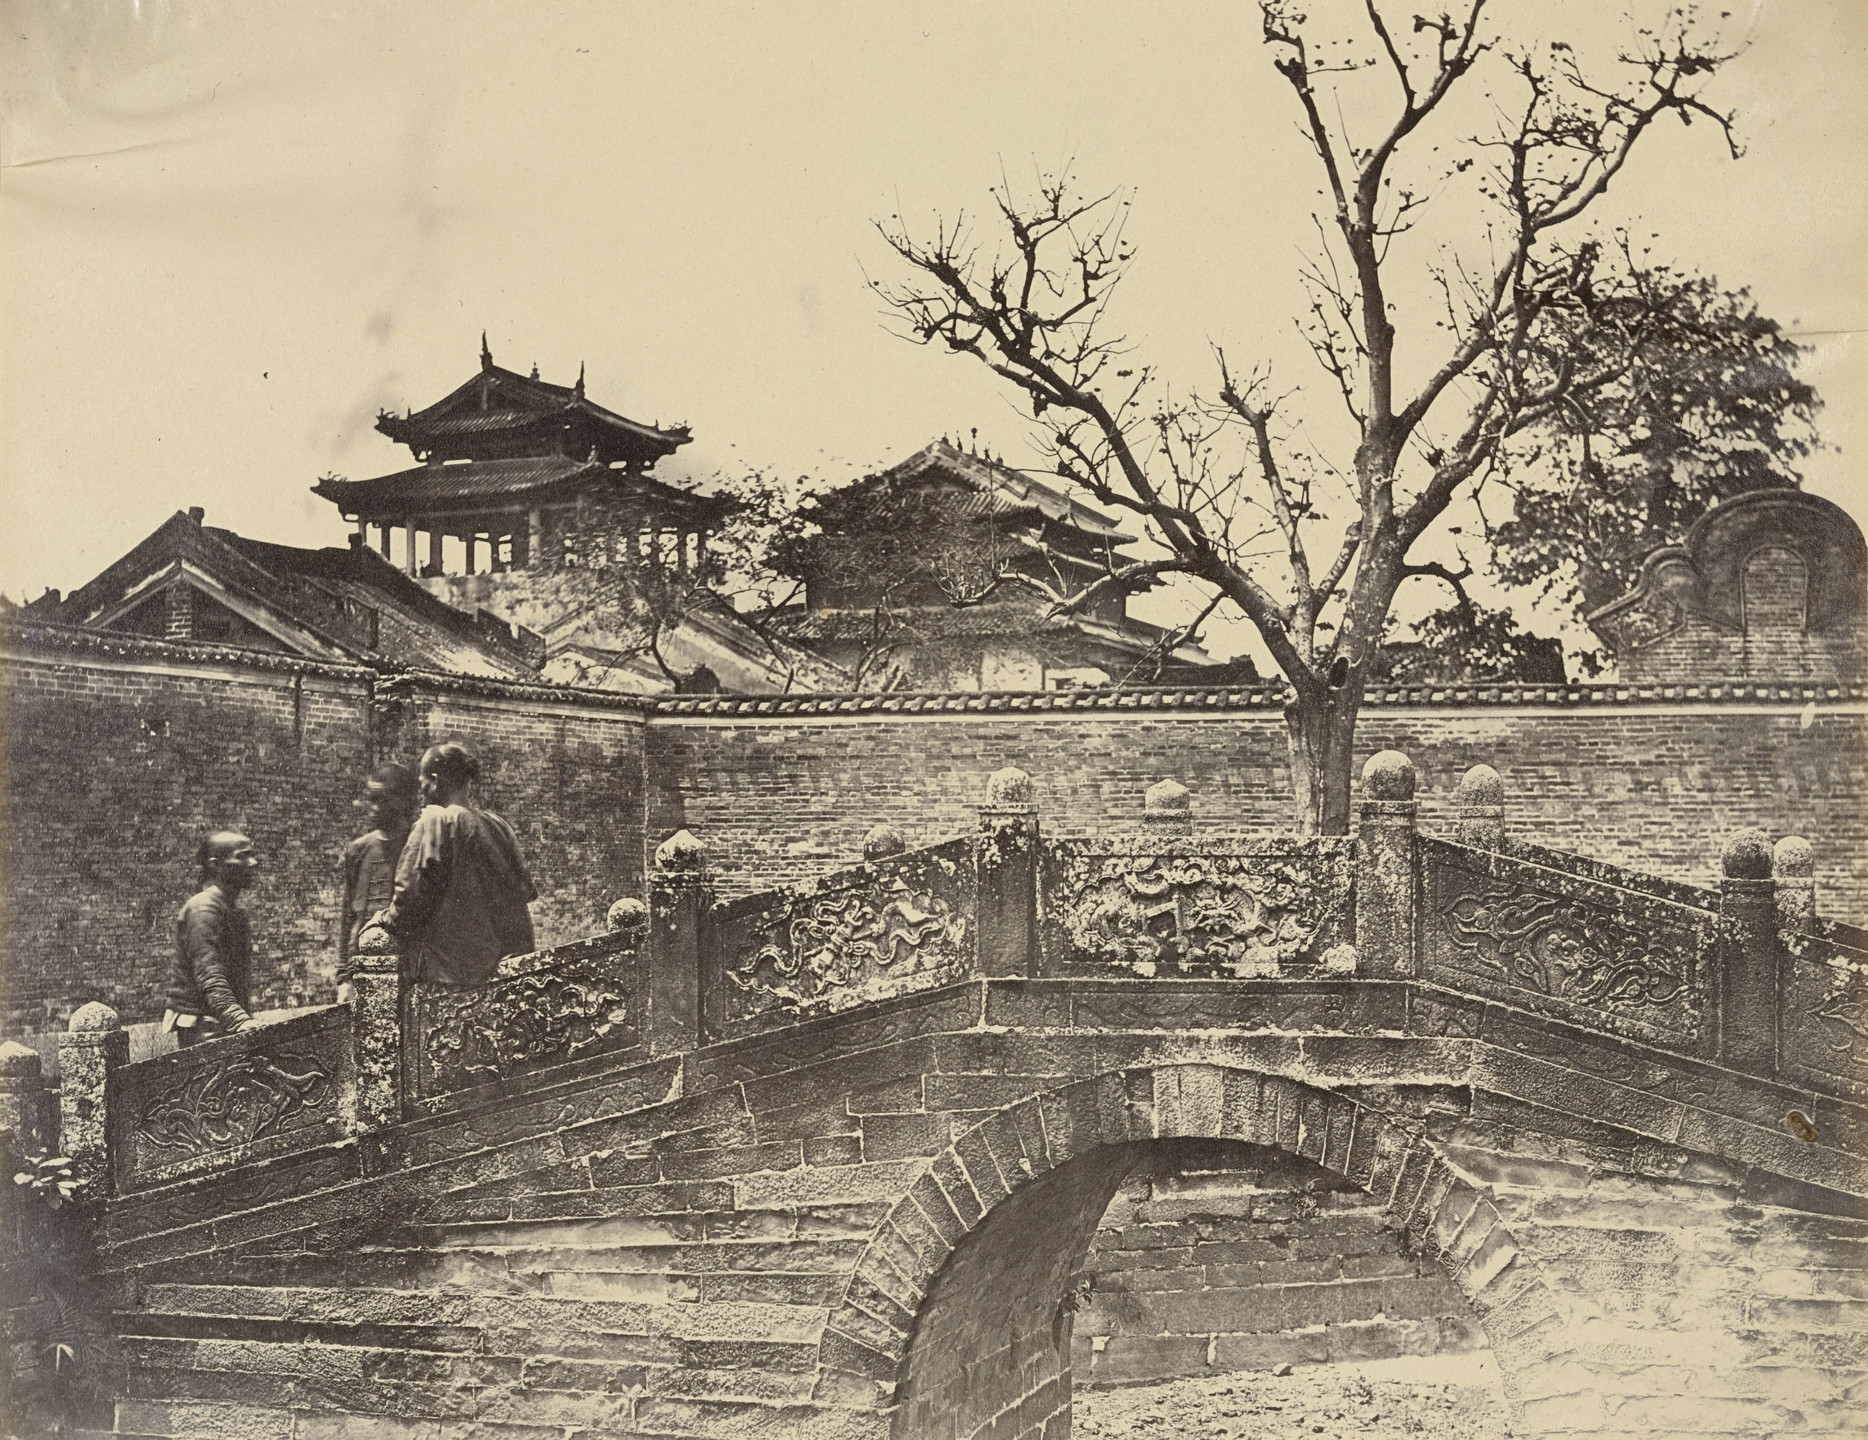 Felice Beato. Bridge in Confucious Temple, Canton. April 1860